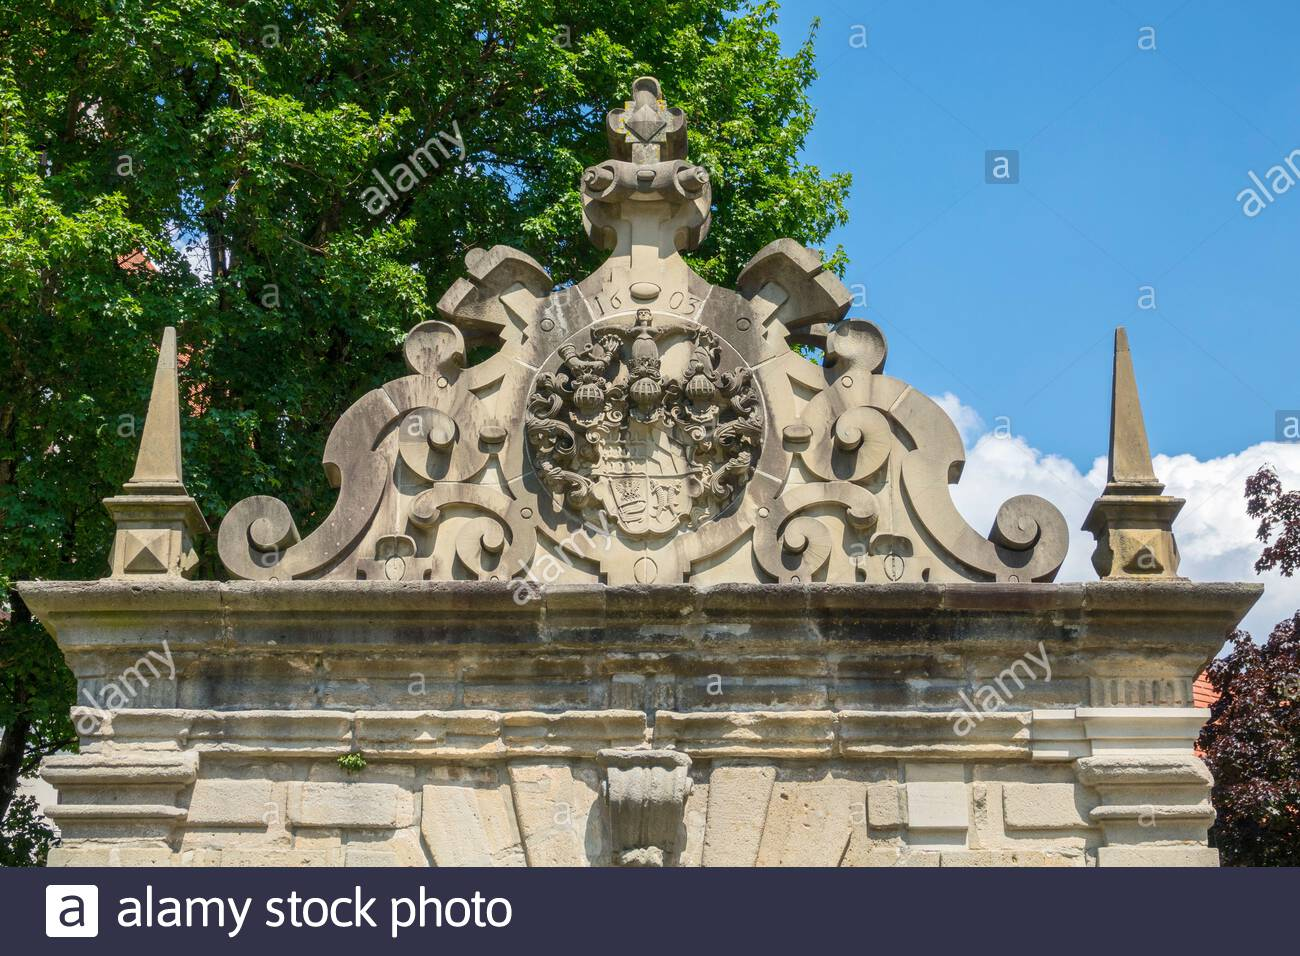 germany baden wrttemberg bad urach tiergartentor coat of arms wrttemberg dukes coat of arms built in 1603 as an entrance gate to the weavers suburb under duke friedrich i of wrttemberg used from 1771 as a gate to the ducal zoo demolished in 1963 renovated in 1992 and rebuilt next to the castle 2B4DXDK